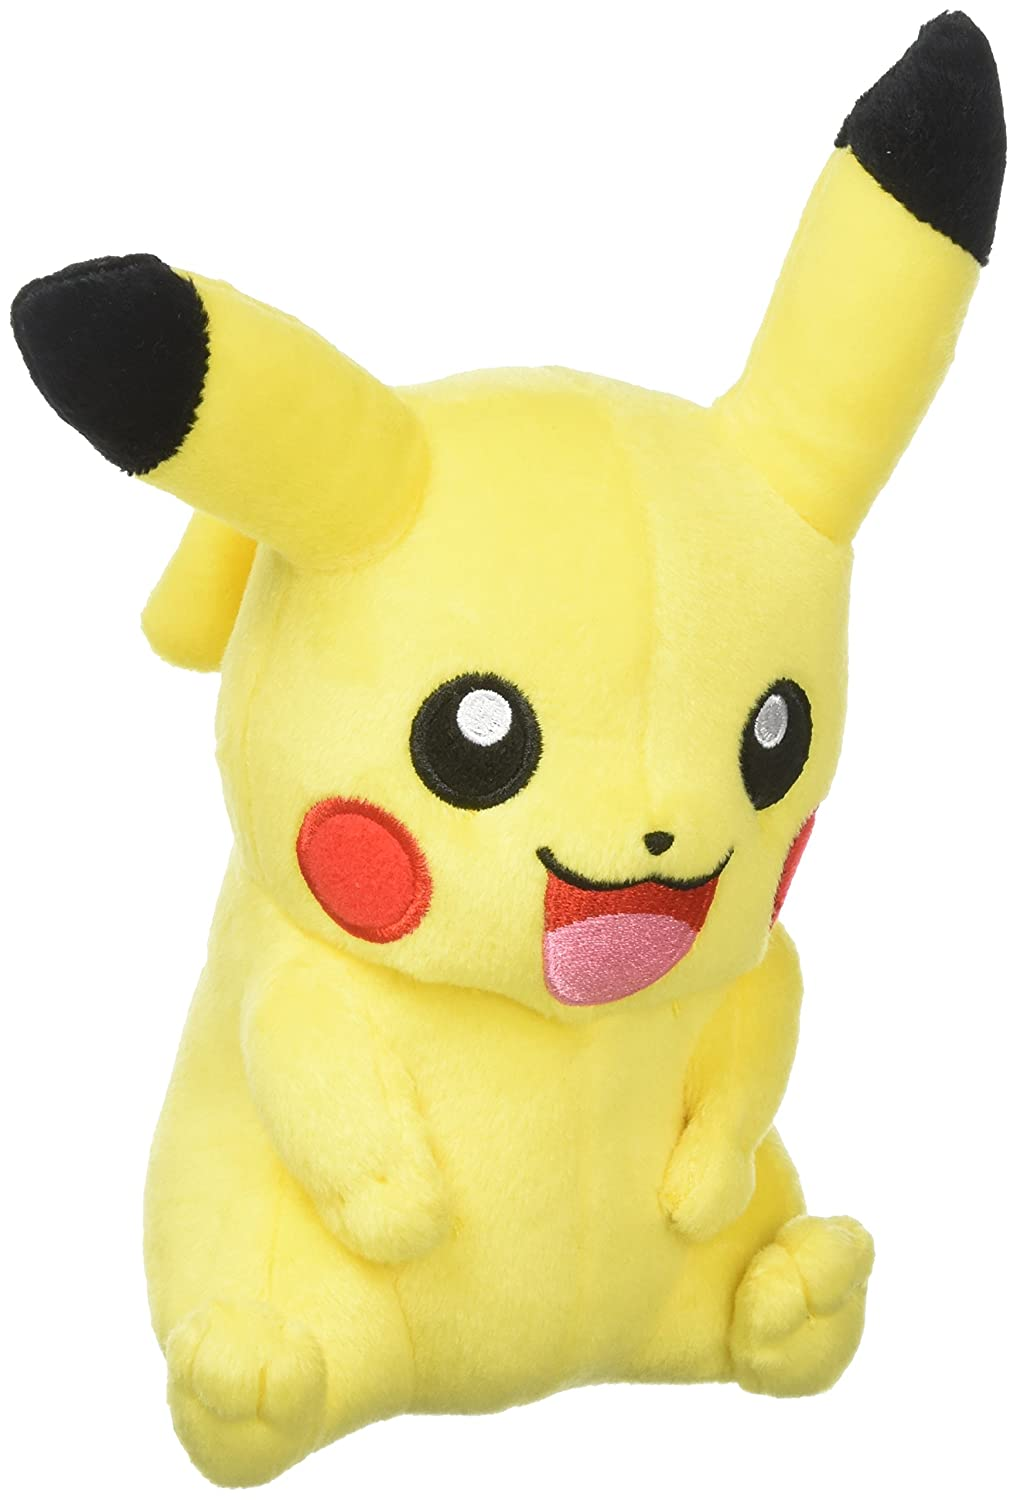 TOMY Pokémon Small Plush Pikachu